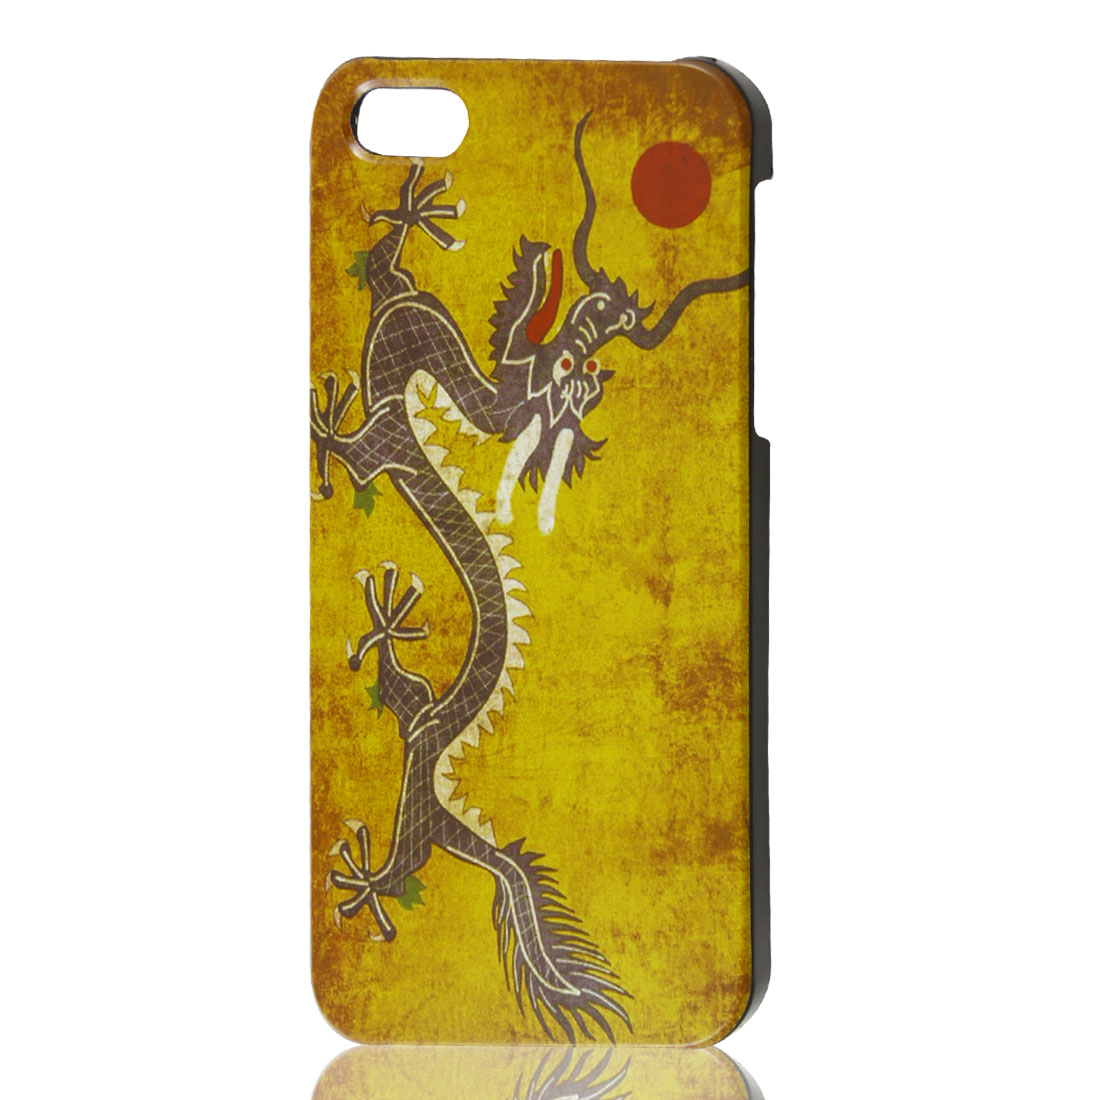 Retro Style Chinese Dragon Flag Hard Case Back Cover Protector for iPhone 5 5G